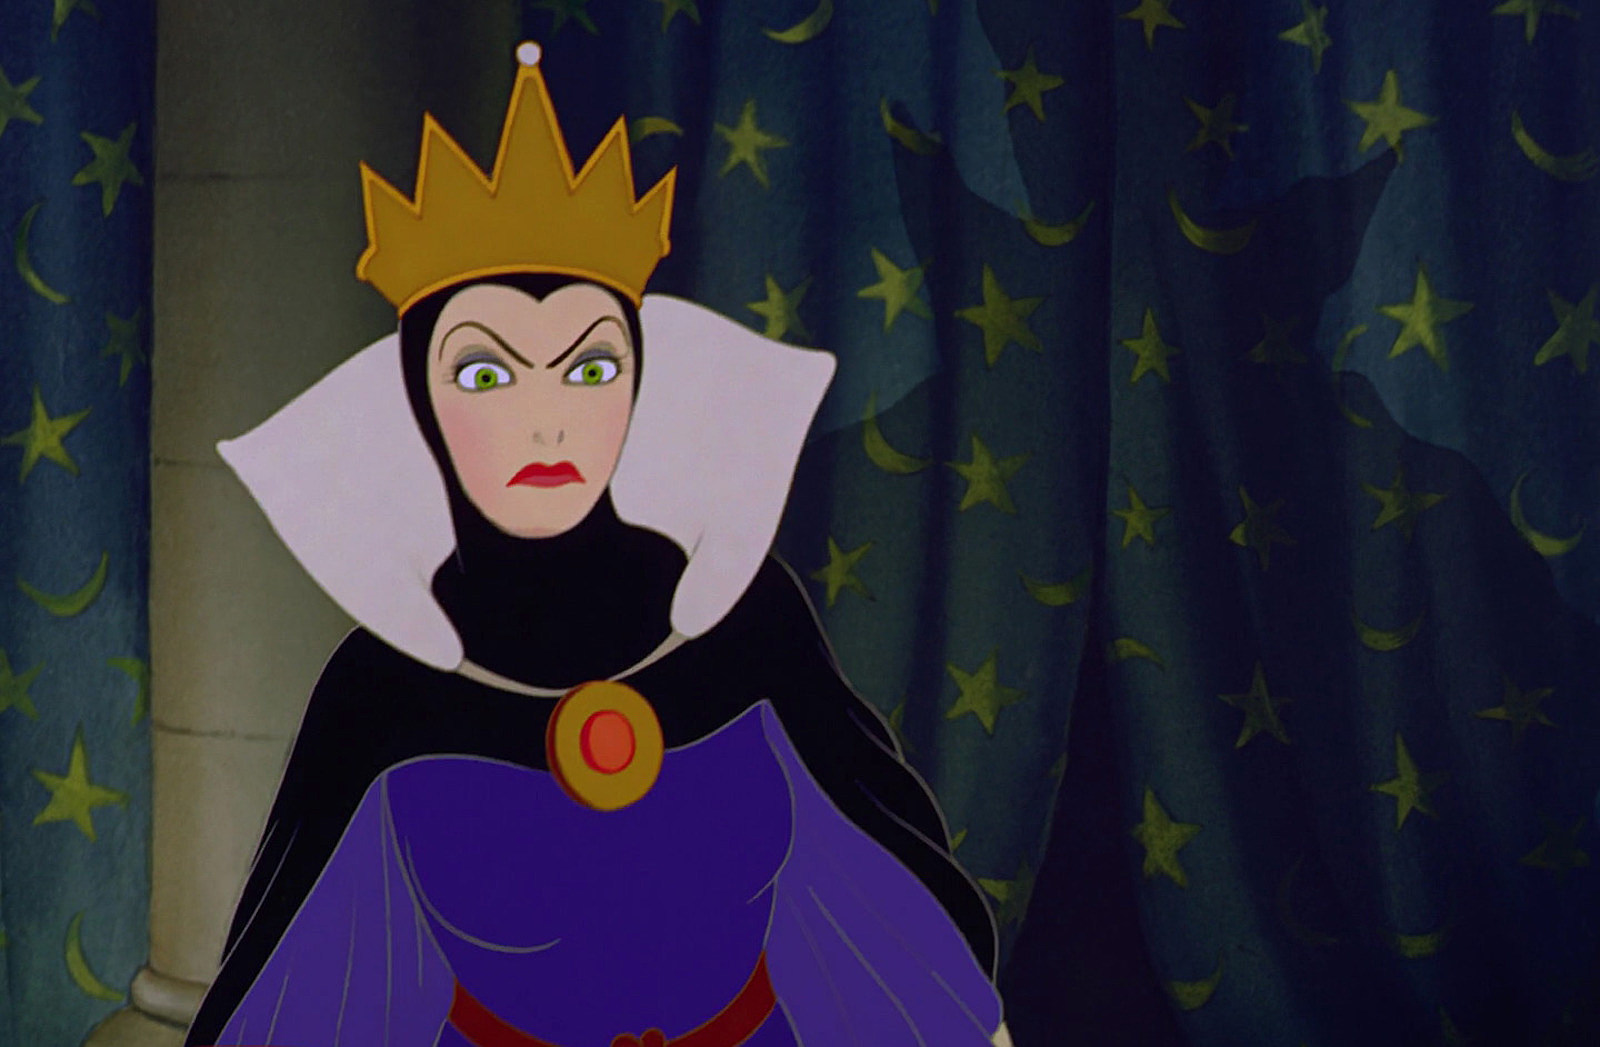 Images - Snow White and the Queen